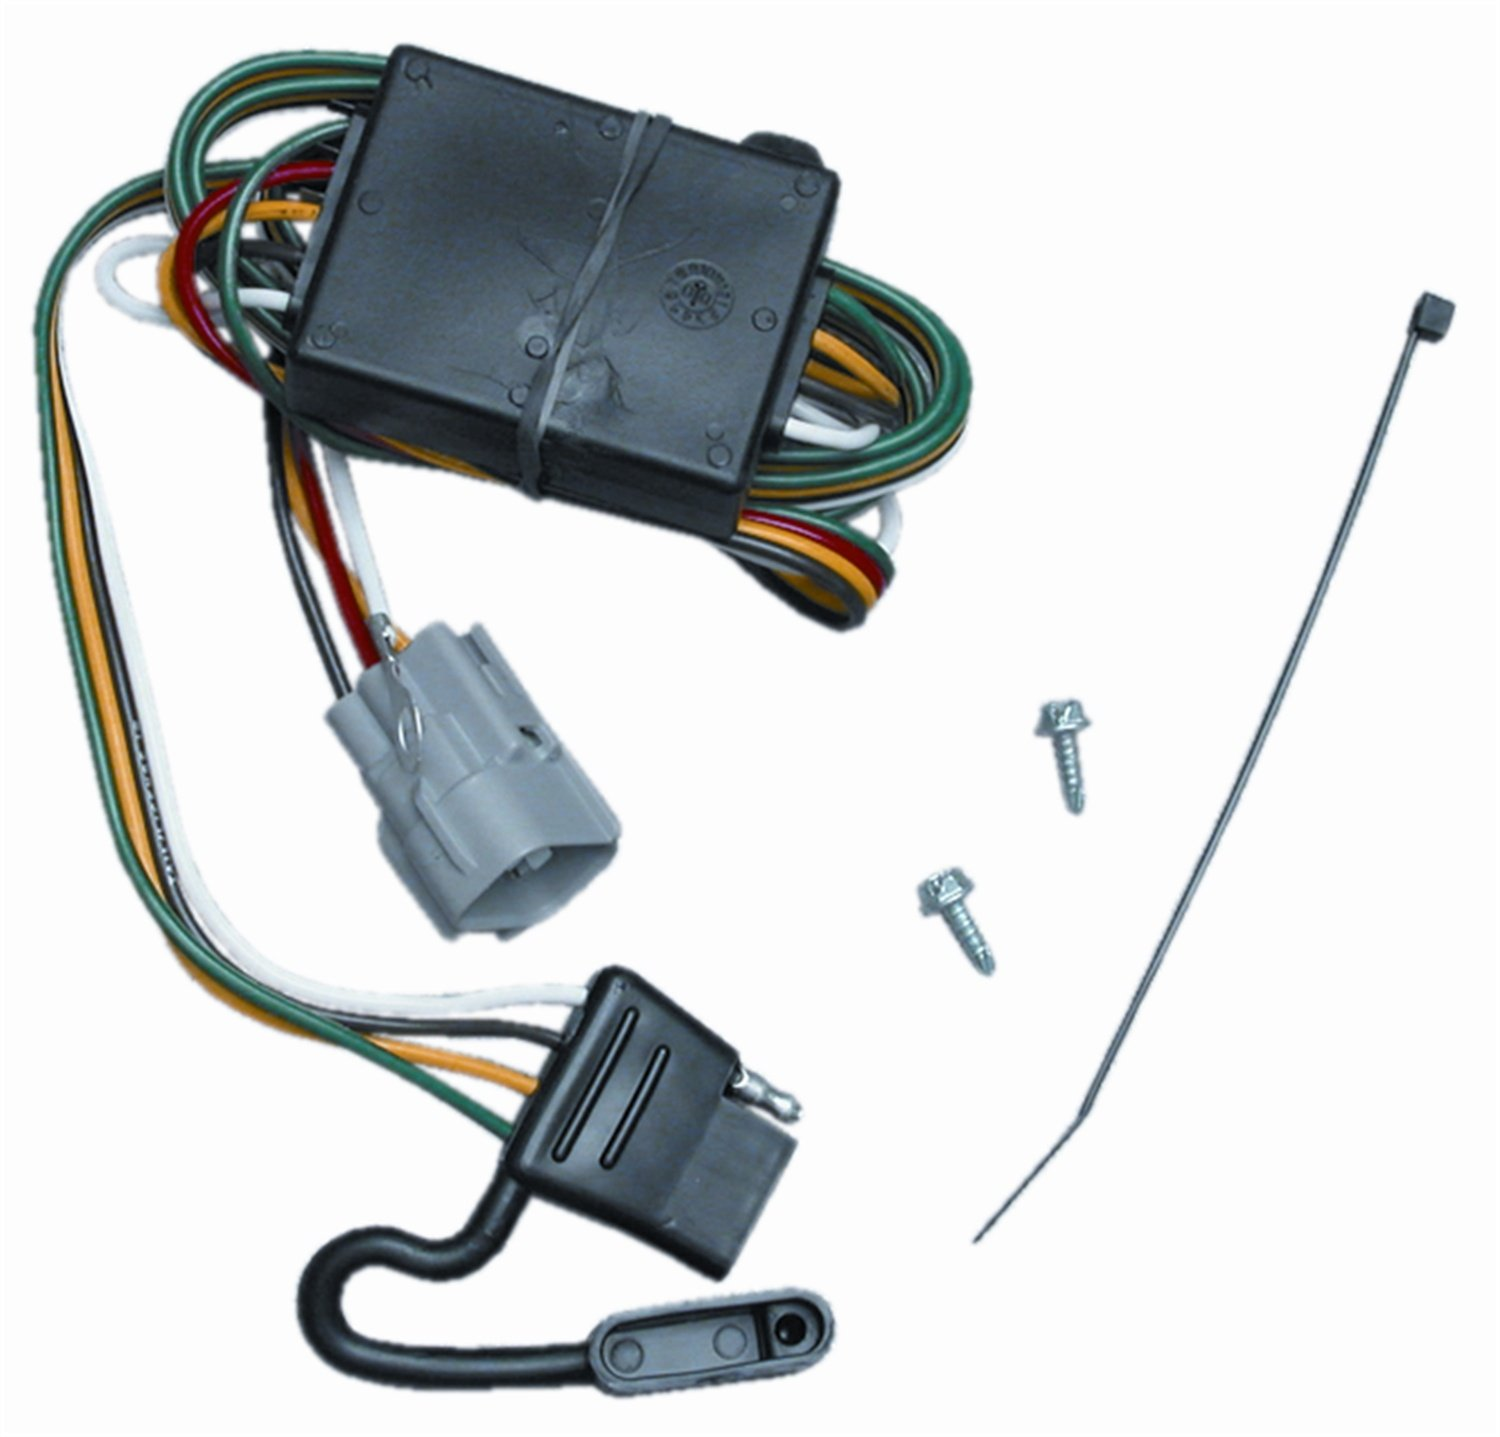 71zHscBxD1L._SL1500_ amazon com vehicle to trailer wiring connector for 98 99 toyota trailer harness wiring at mifinder.co